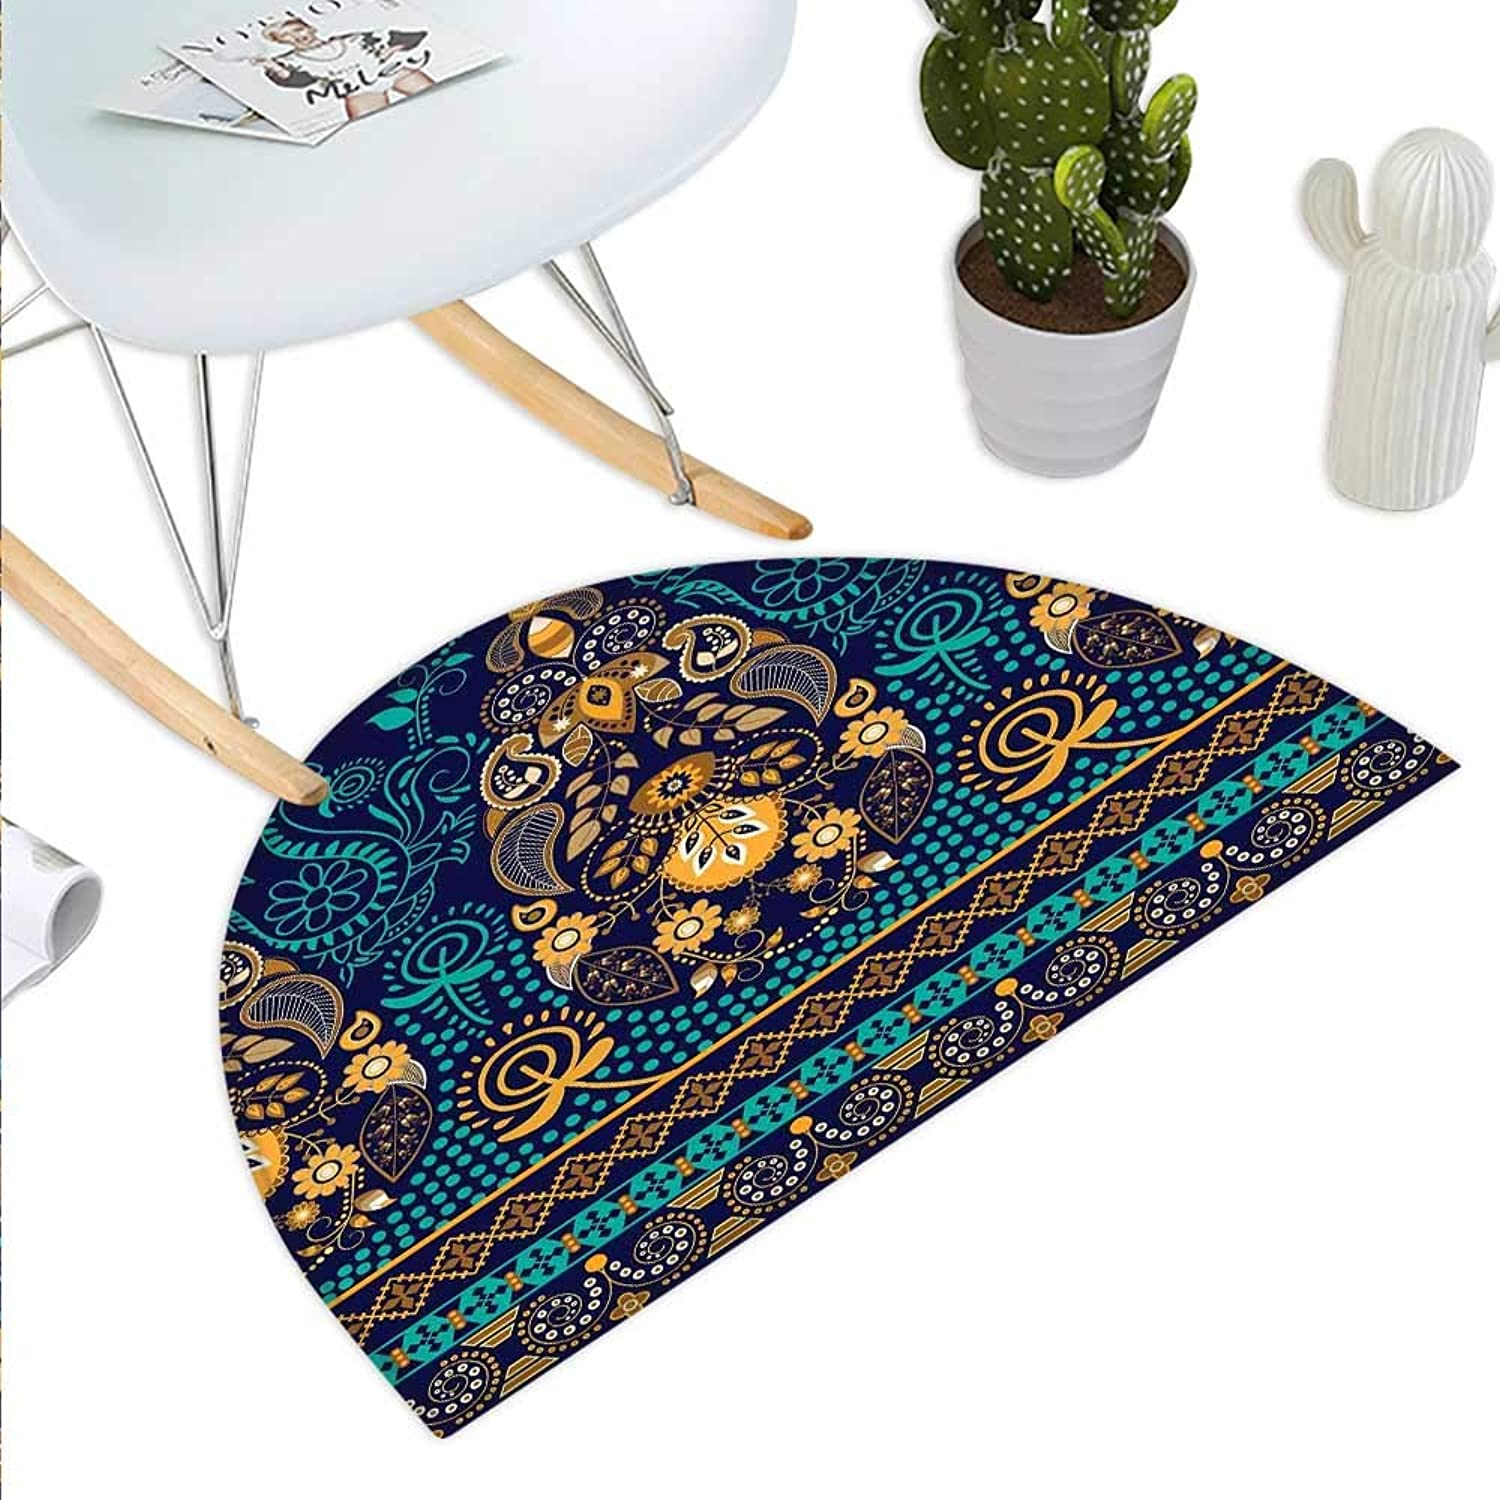 Paisley Semicircle Doormat Ethnic Backgrounded Design with The Pattern of Flower Leaves and Dots Image Halfmoon doormats H 43.3  xD 64.9  bluee and gold